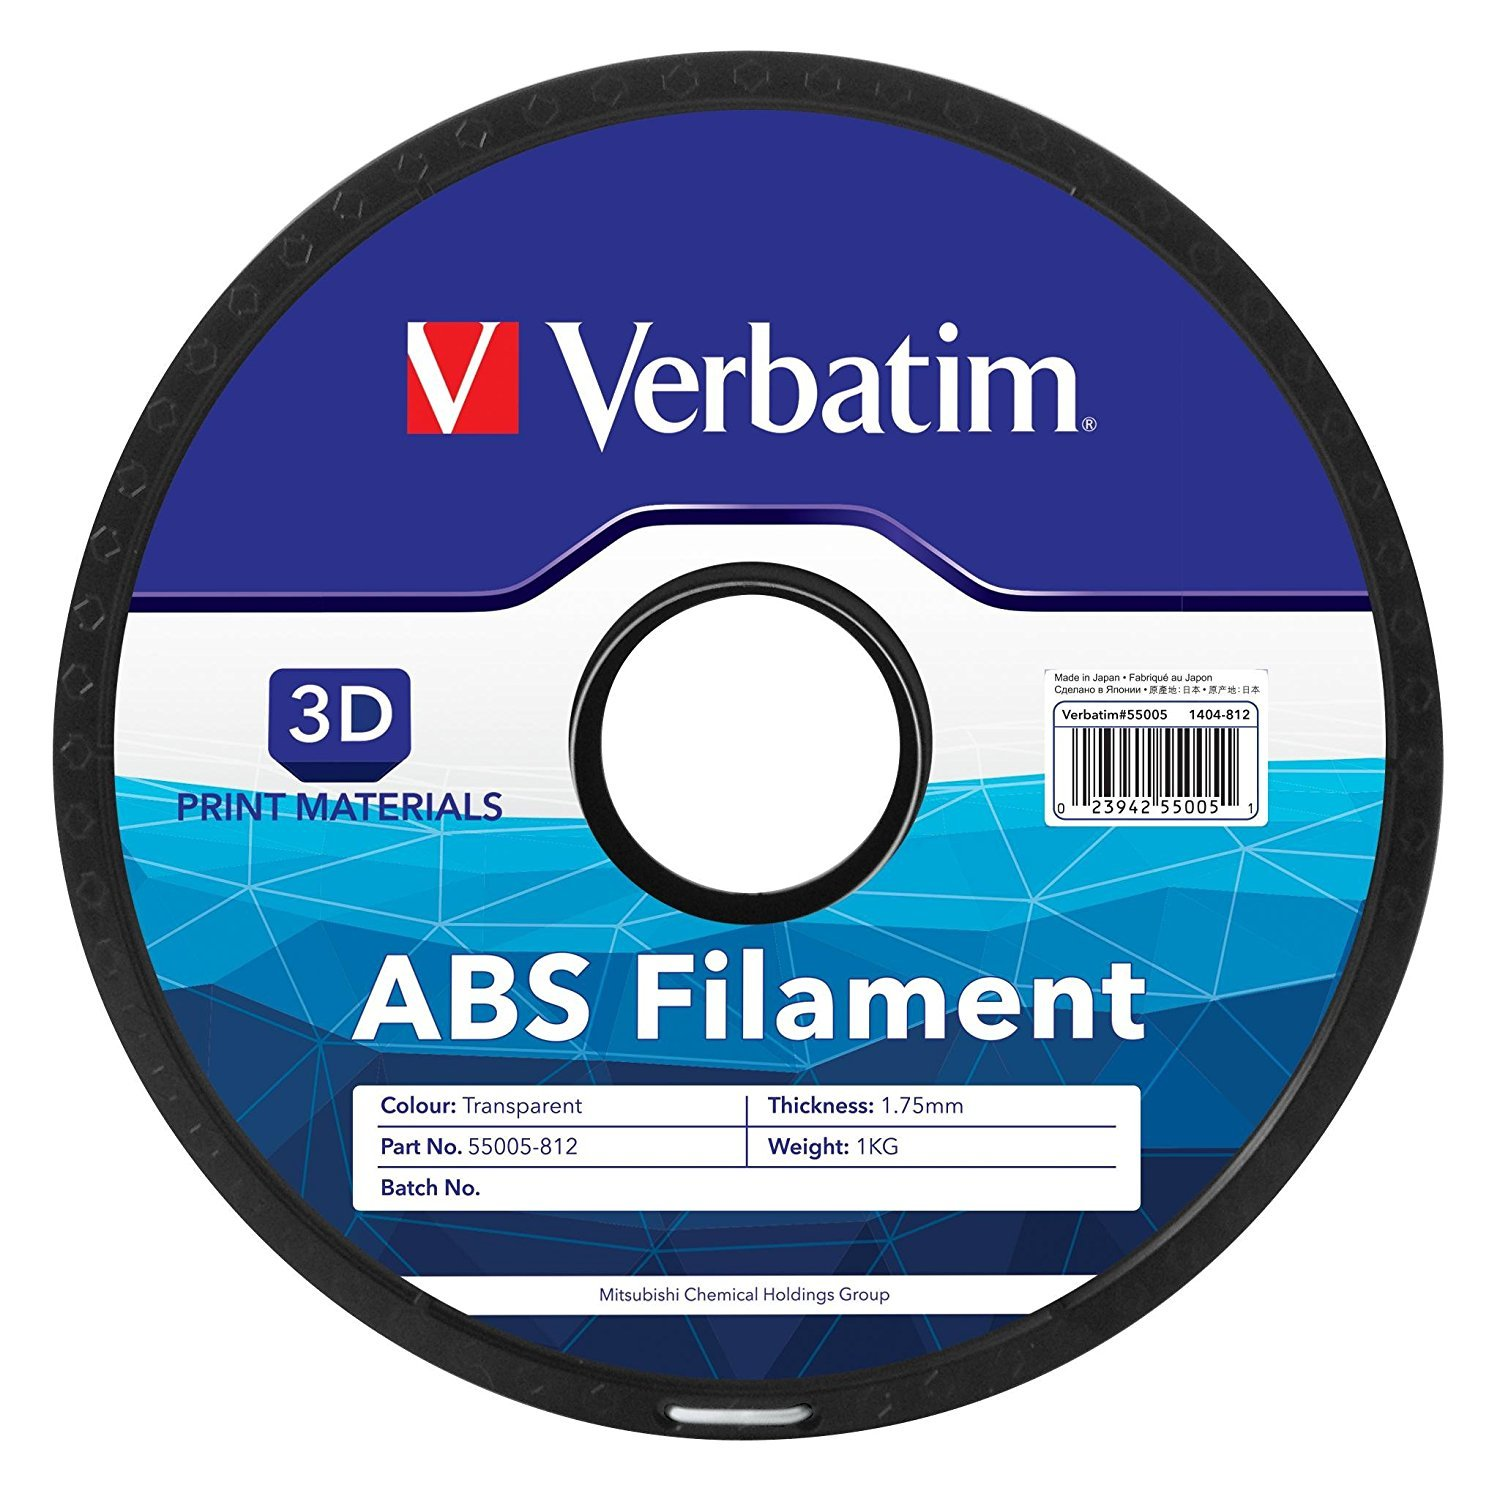 Verbatim 3D Printer ABS 1.75mm Filament - 1kg Reel (Transparent) image